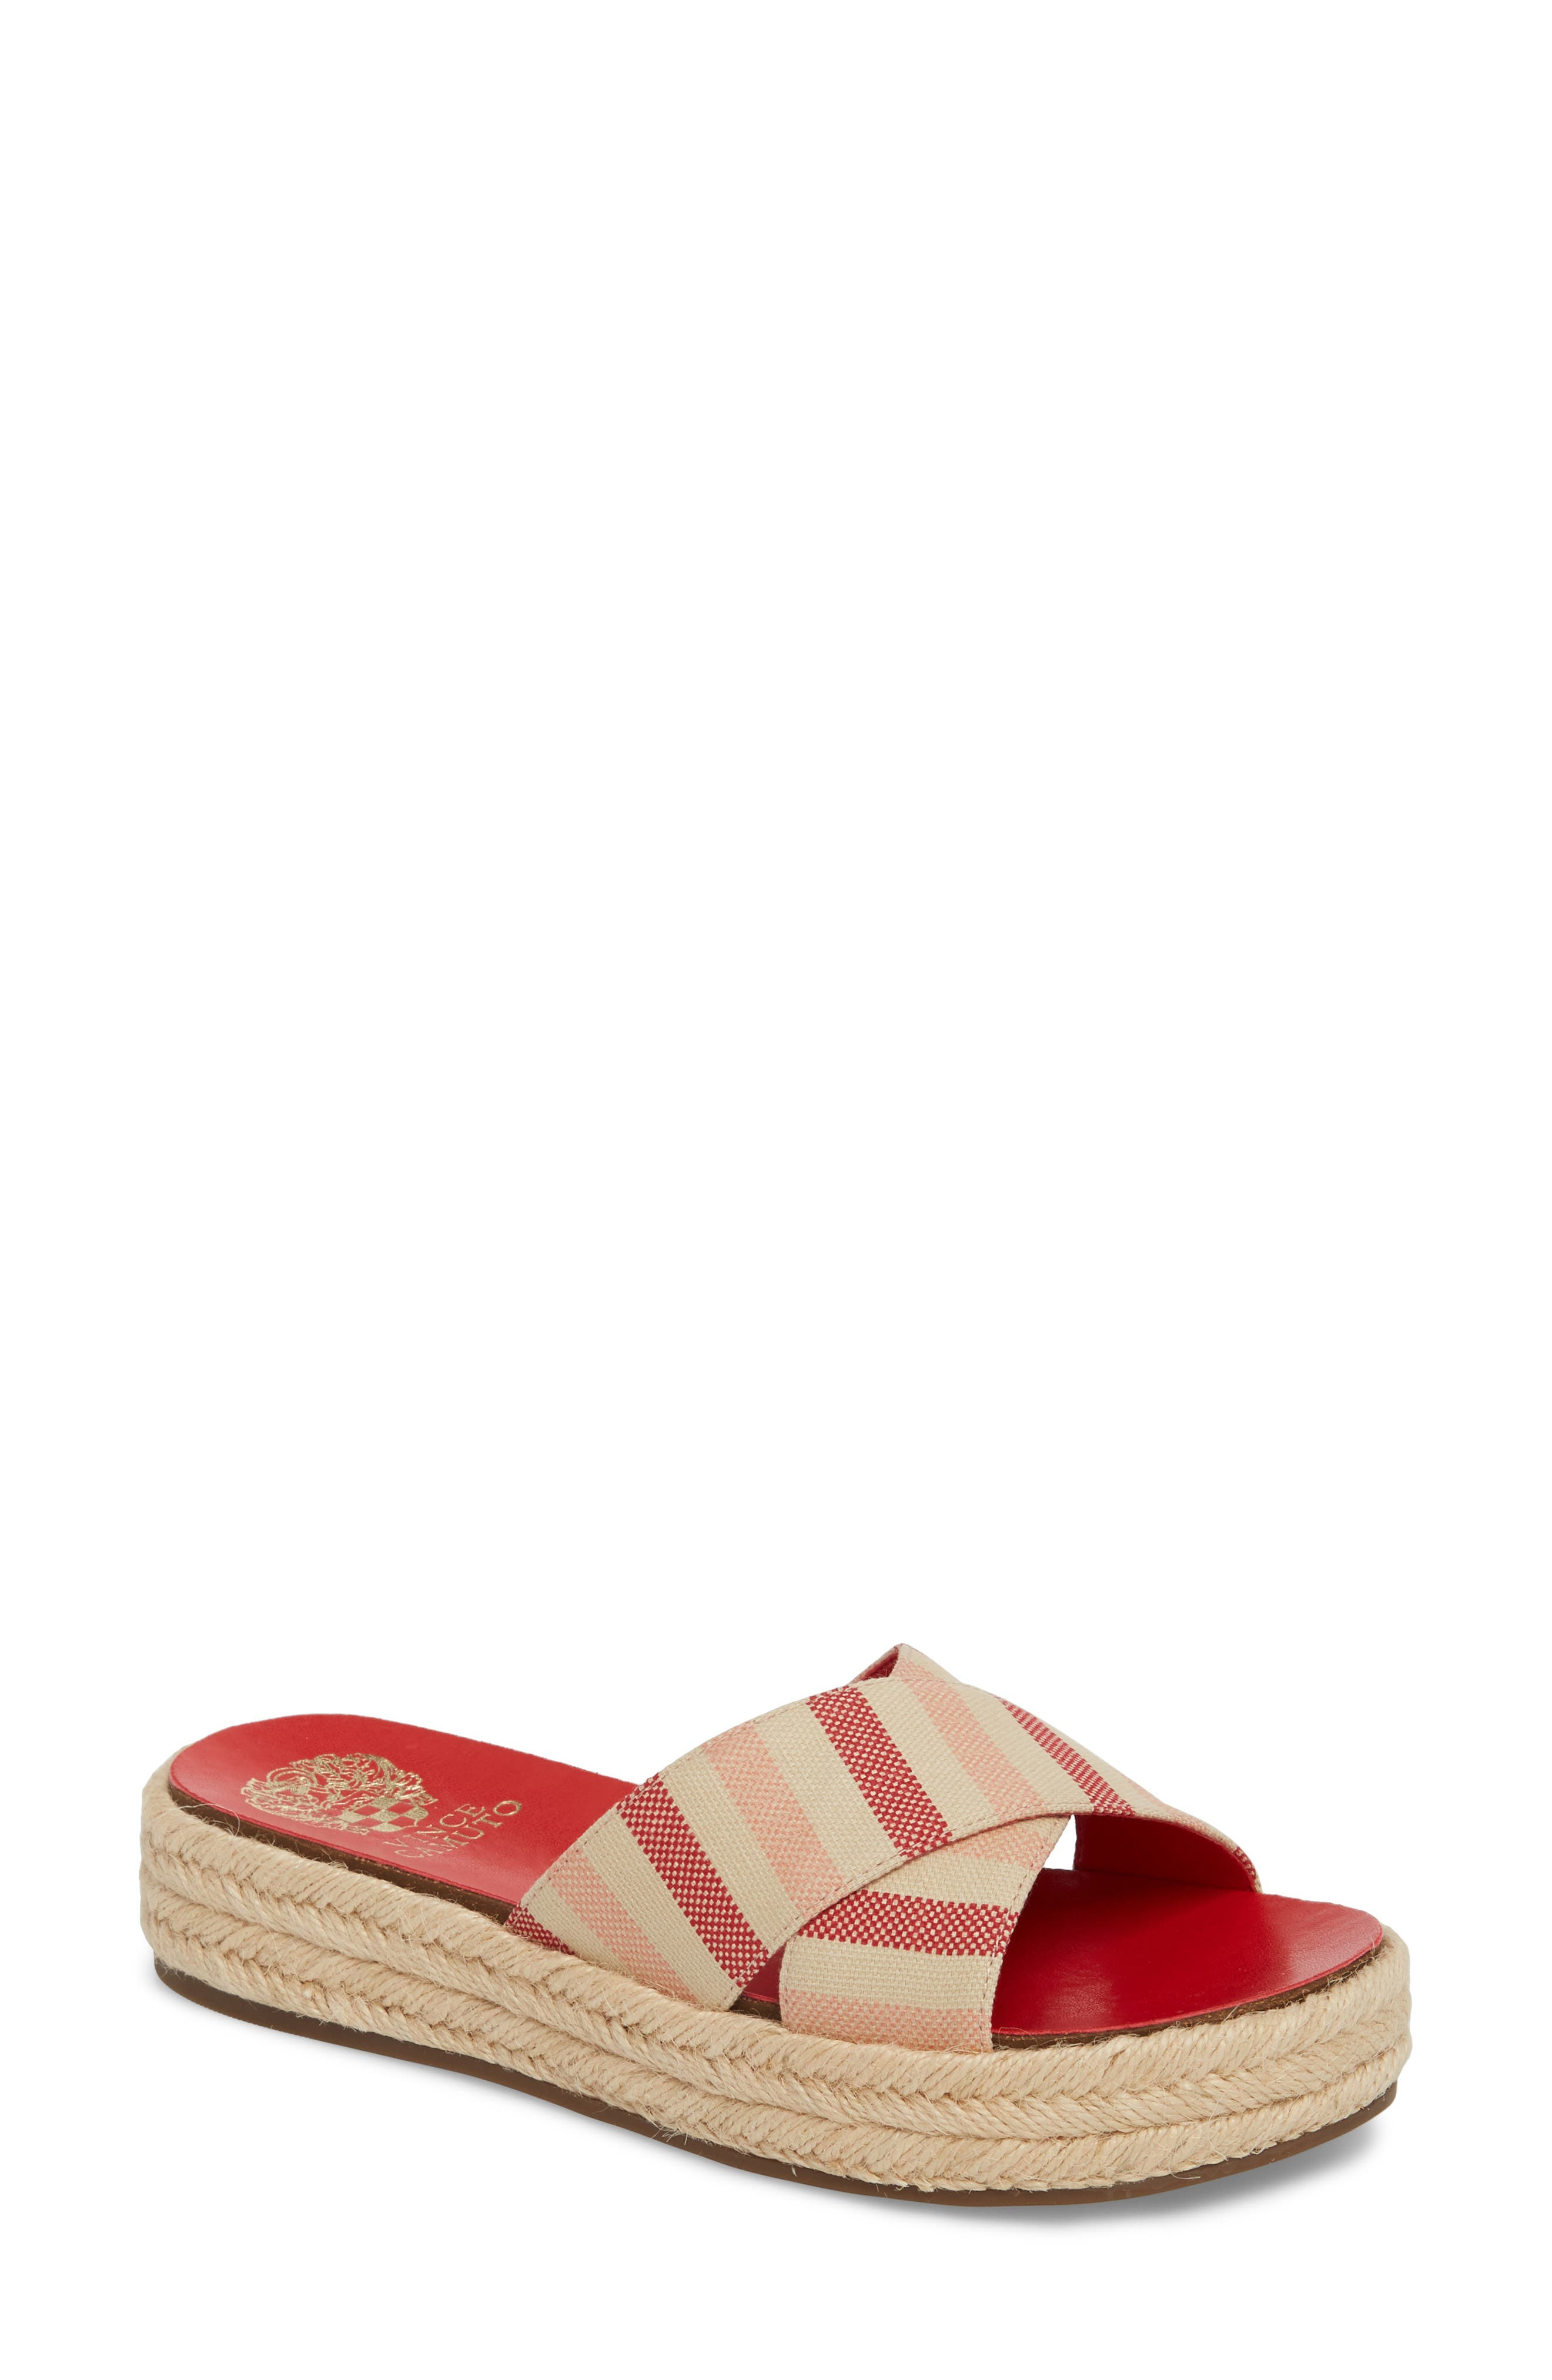 Carran Platform Sandal,                         Main,                         color, Red Hot Rio Stripe Canvas